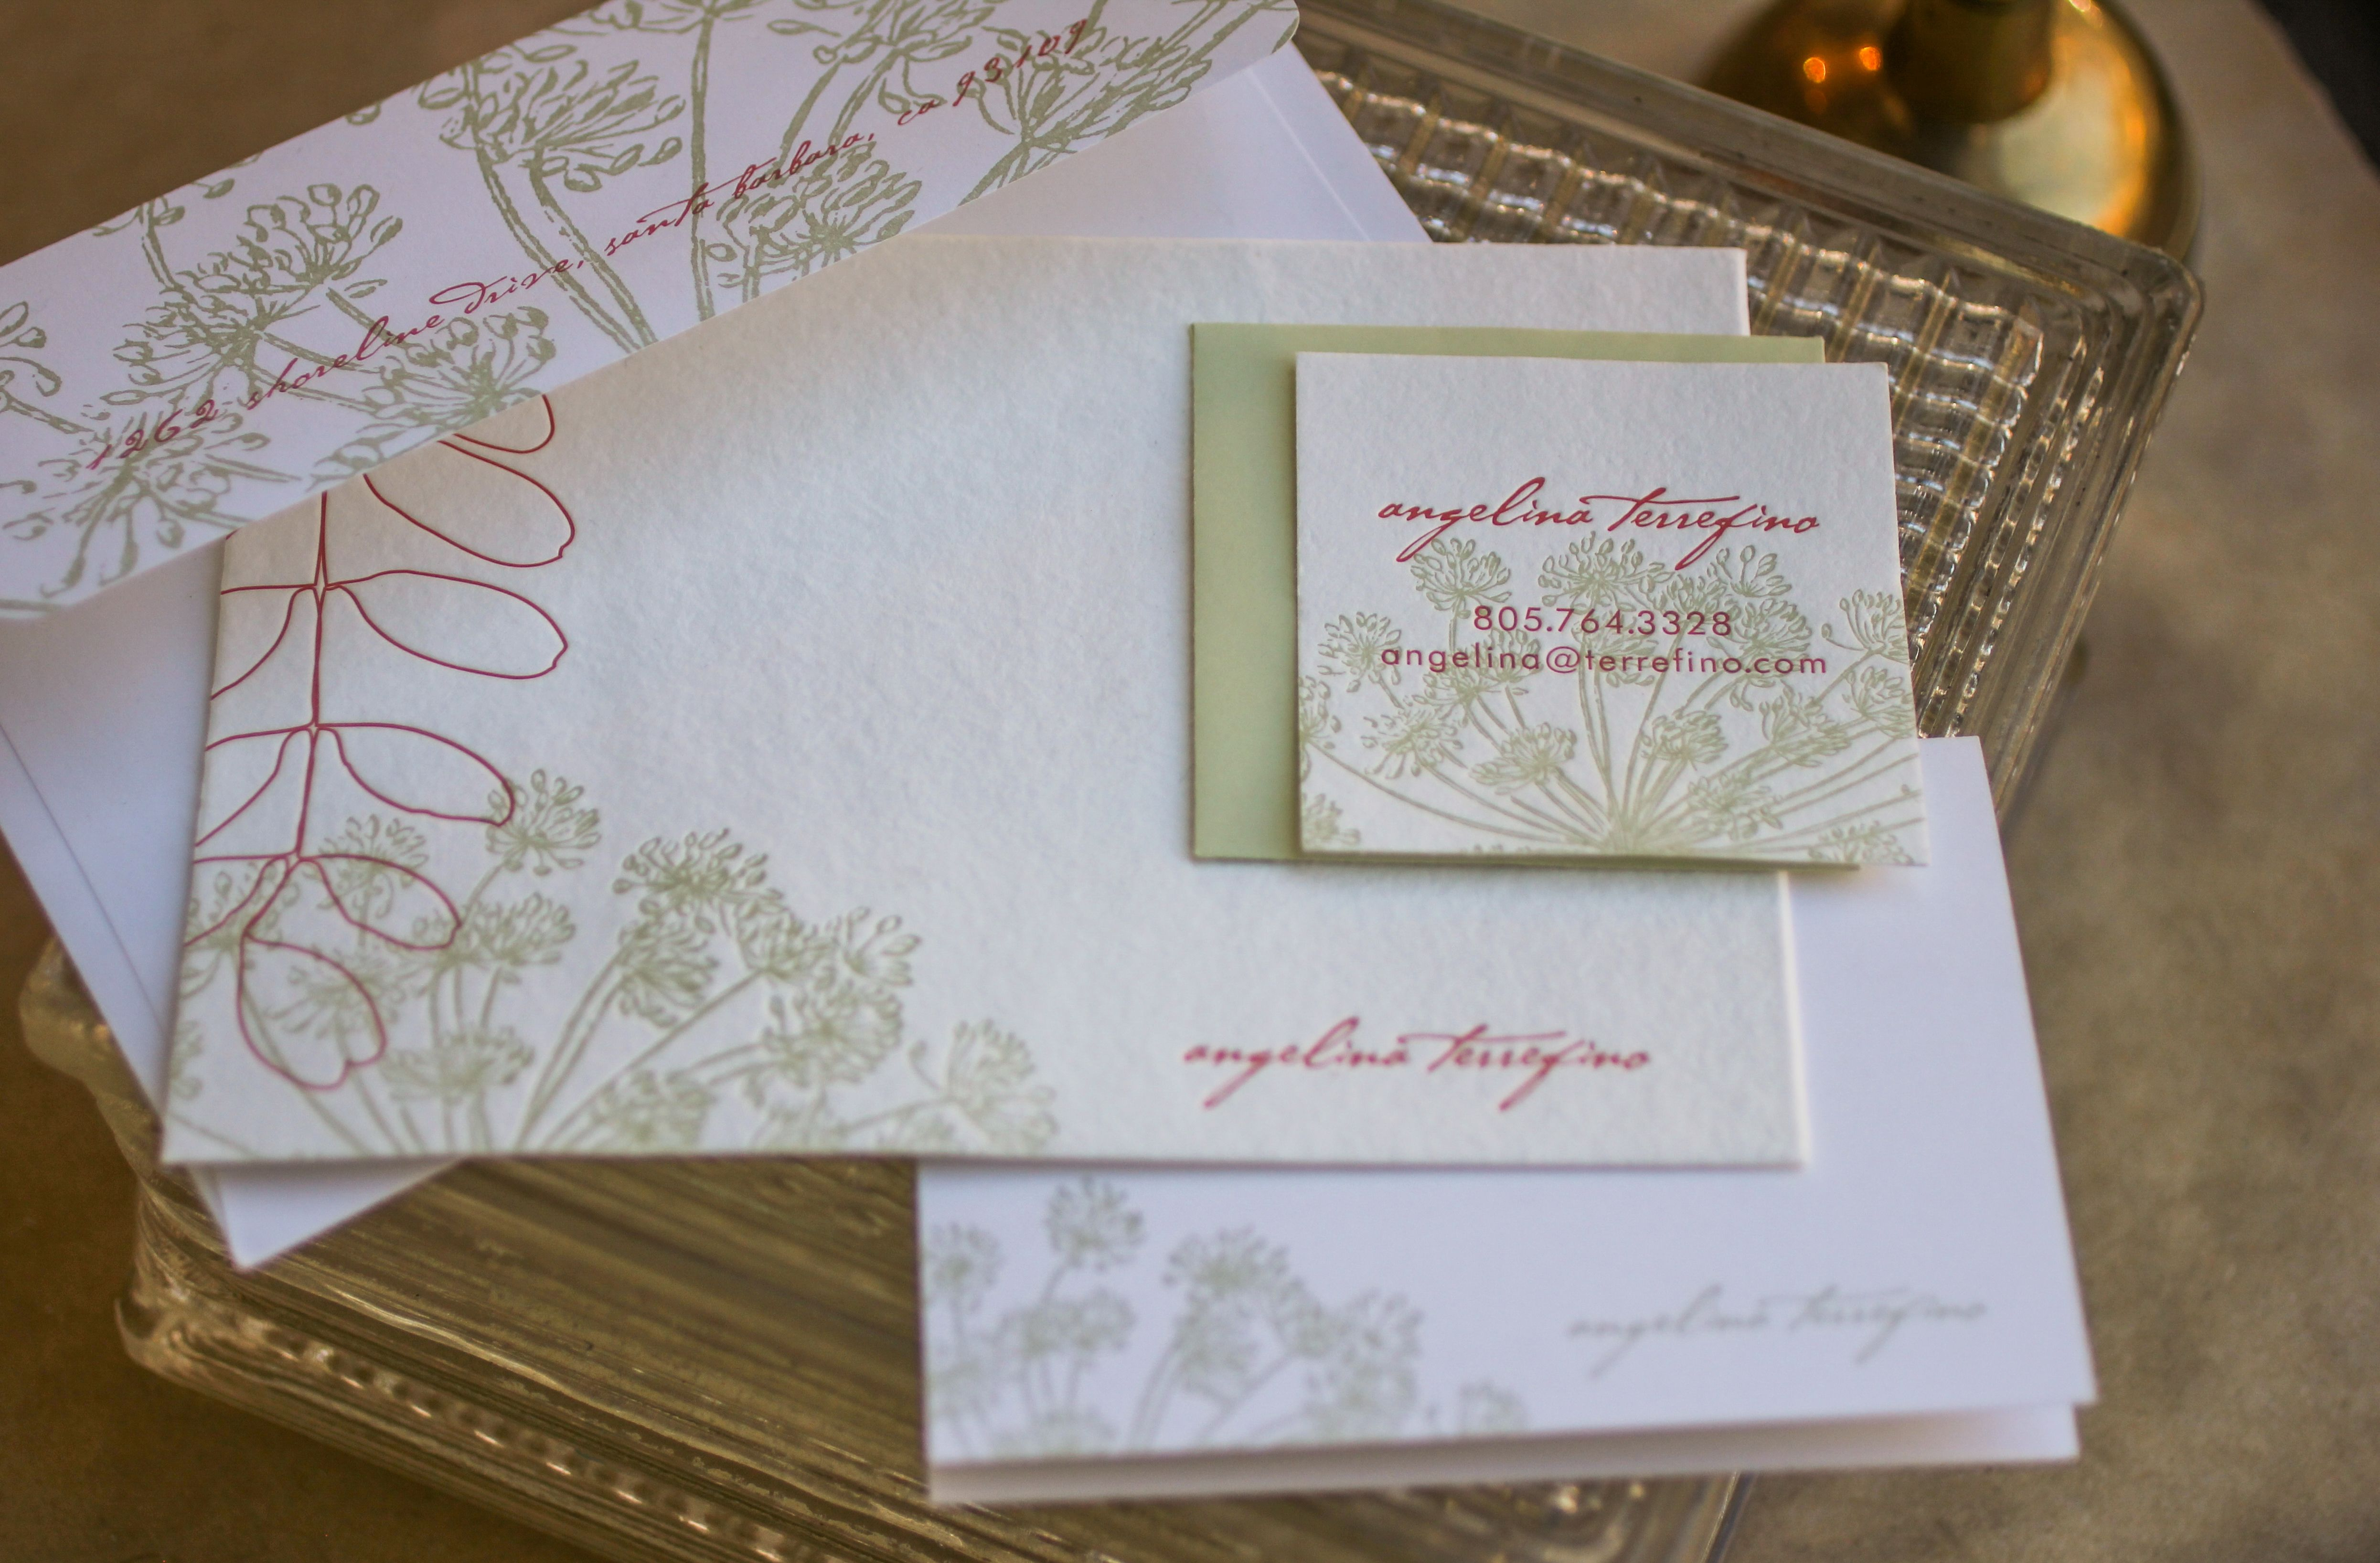 frond suite  express yourself on a botanically  inspired stationery suite that illustrates the joy of springtime with lovely organic lines SHOWN IN: coral + meadow inks  on 100% recycled white, cotton envelopes + pale green liner